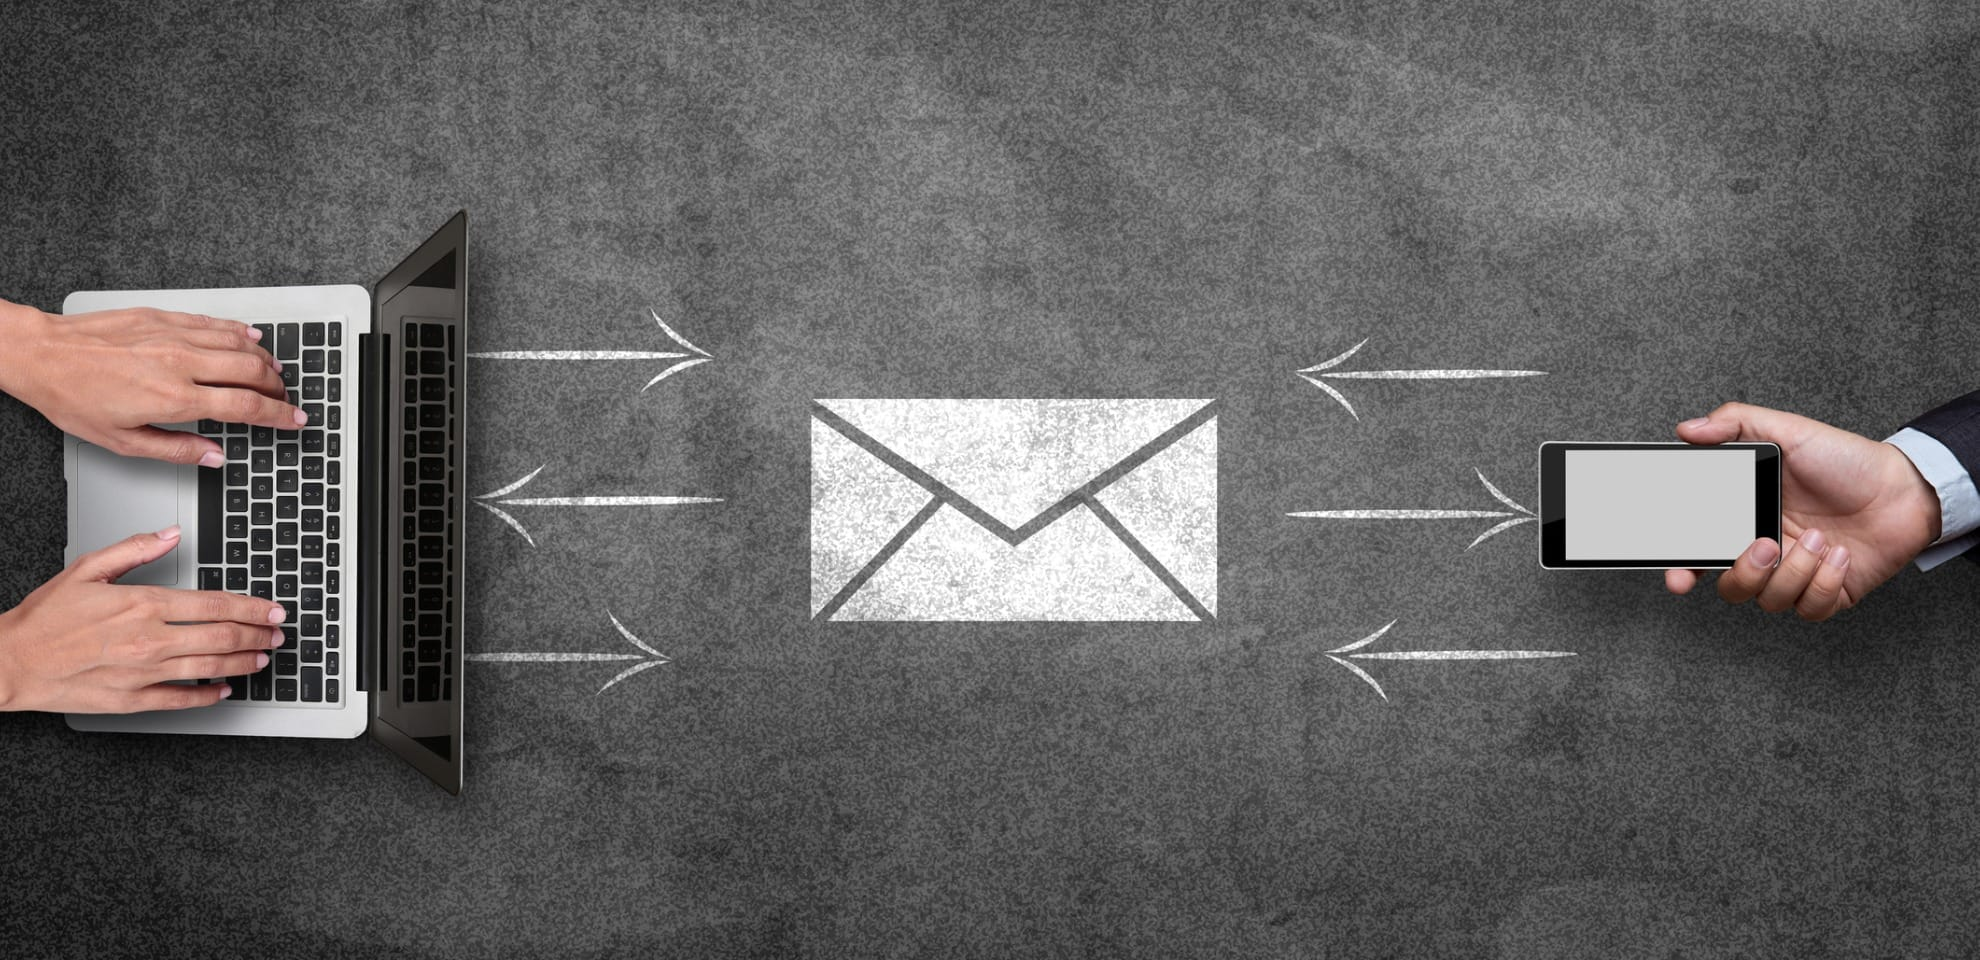 We Researched the Best Email Marketing Services for Small Business (So You Don't Have to!)